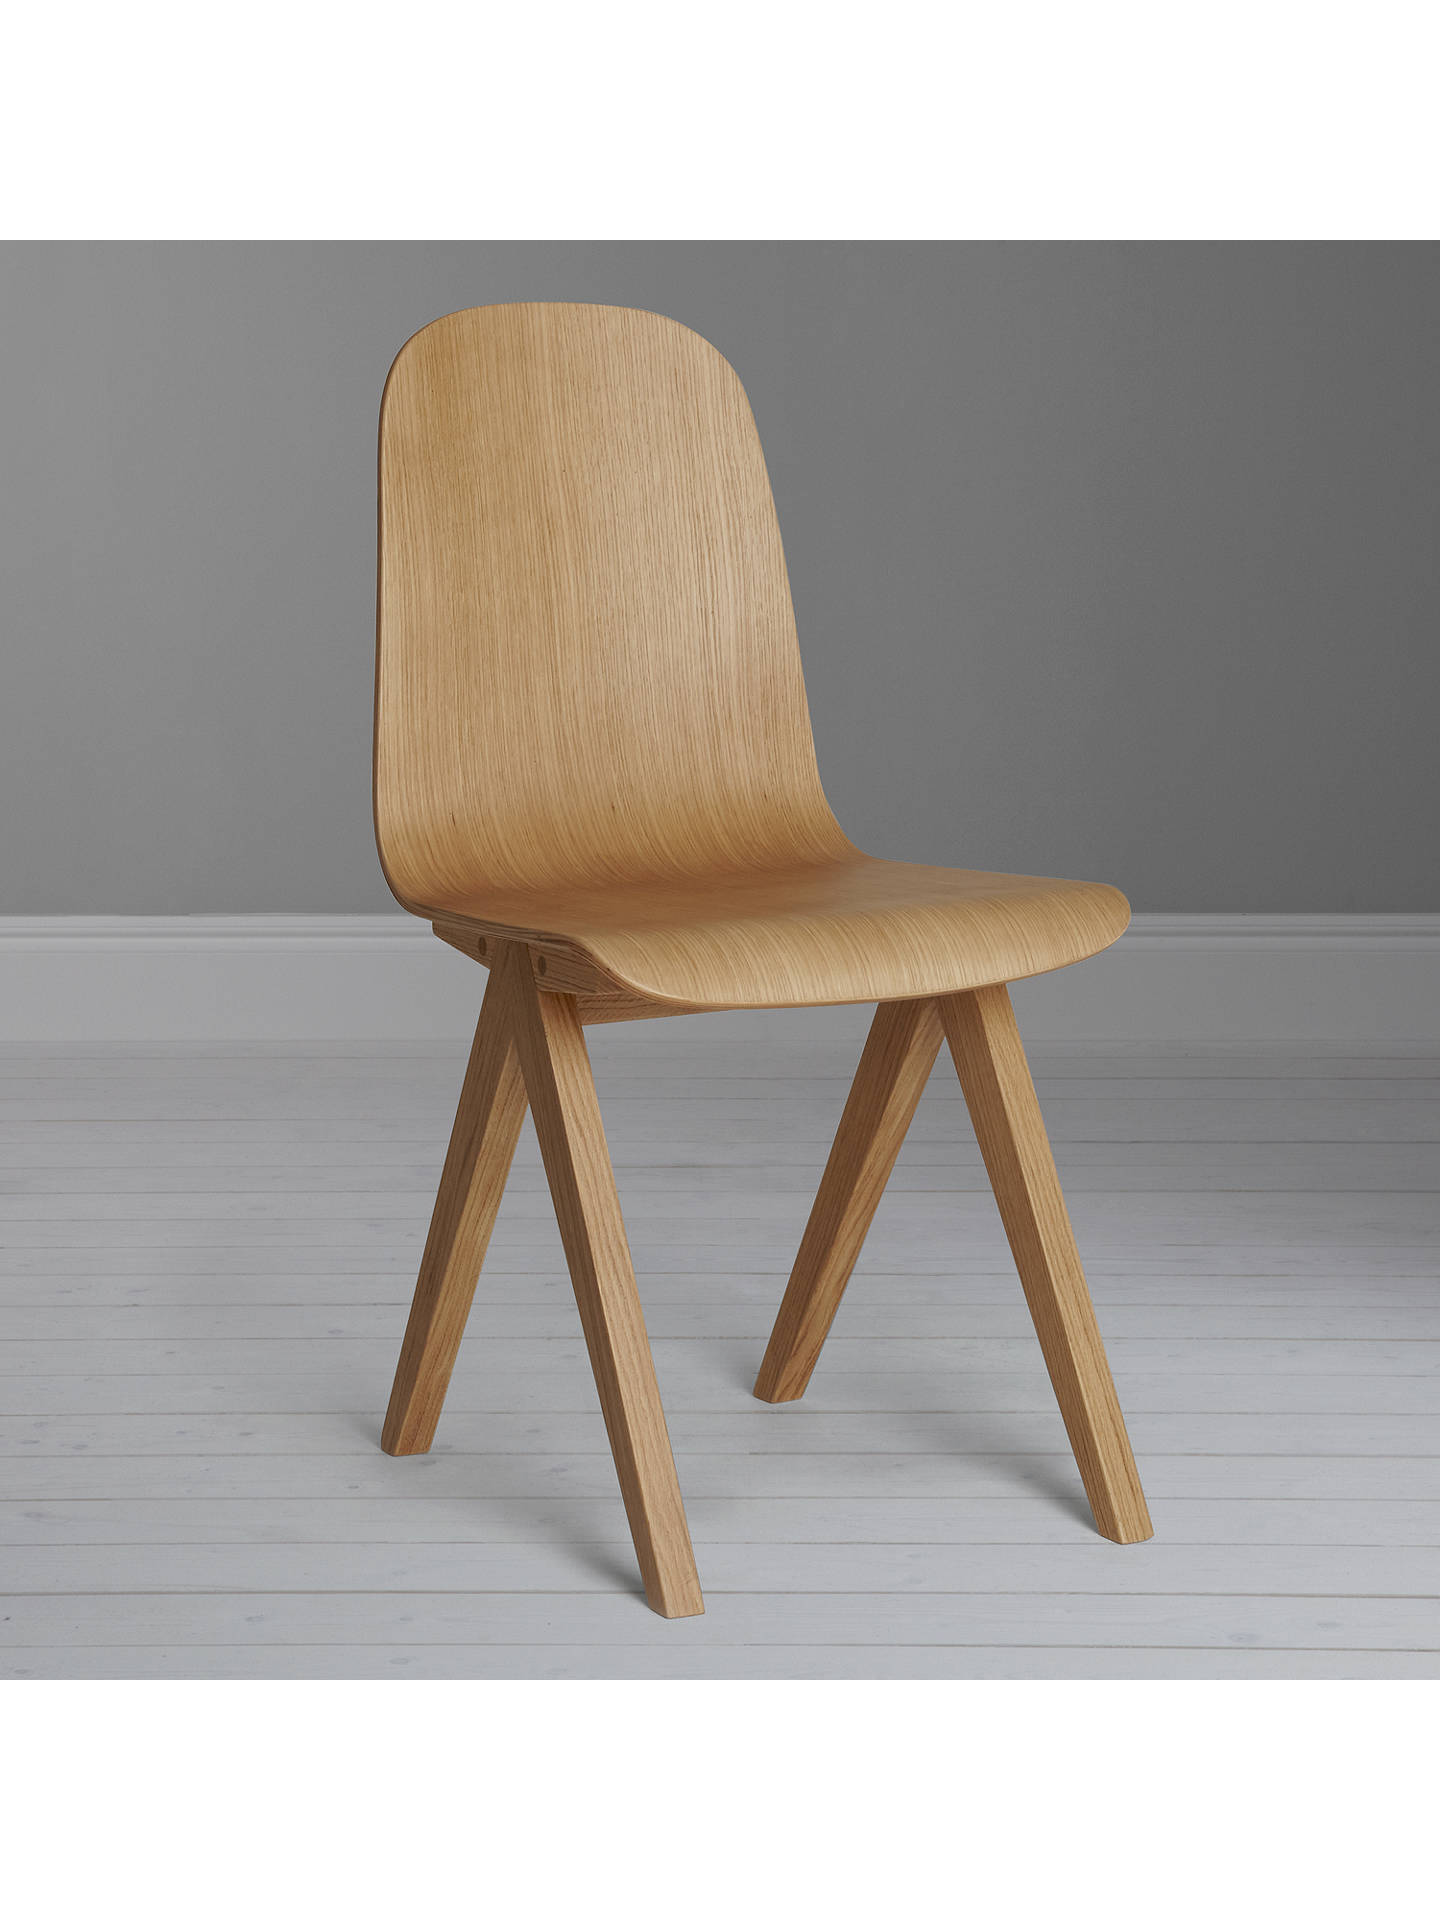 Buy Bethan Gray for John Lewis Newman Plywood Dining Chair, Oak Online at johnlewis.com